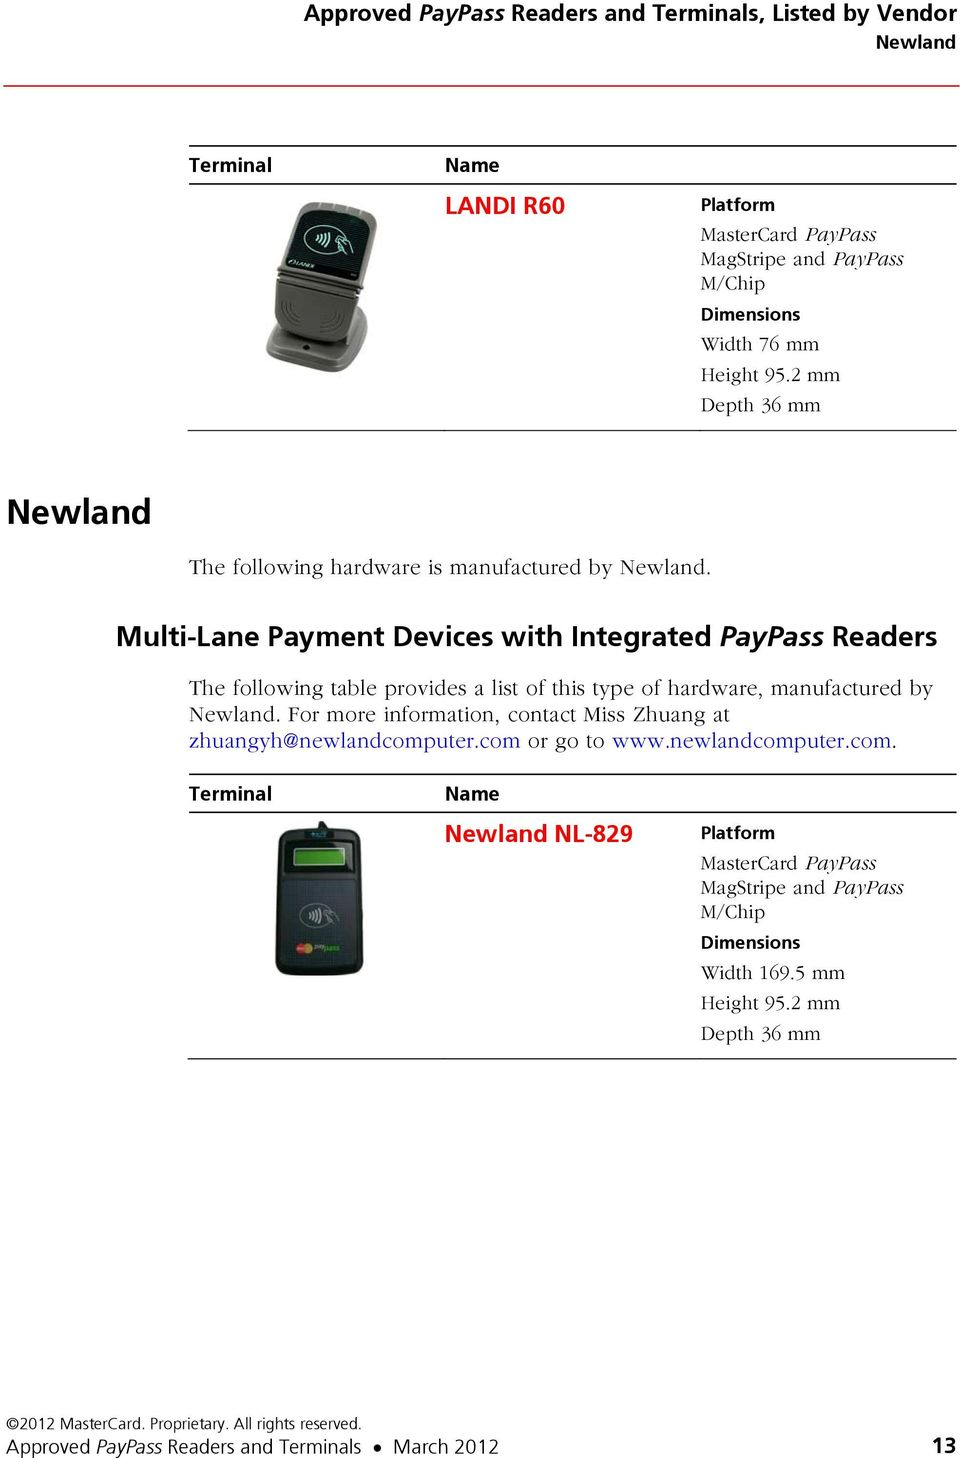 Multi-Lane Payment Devices with Integrated PayPass Readers Newland.